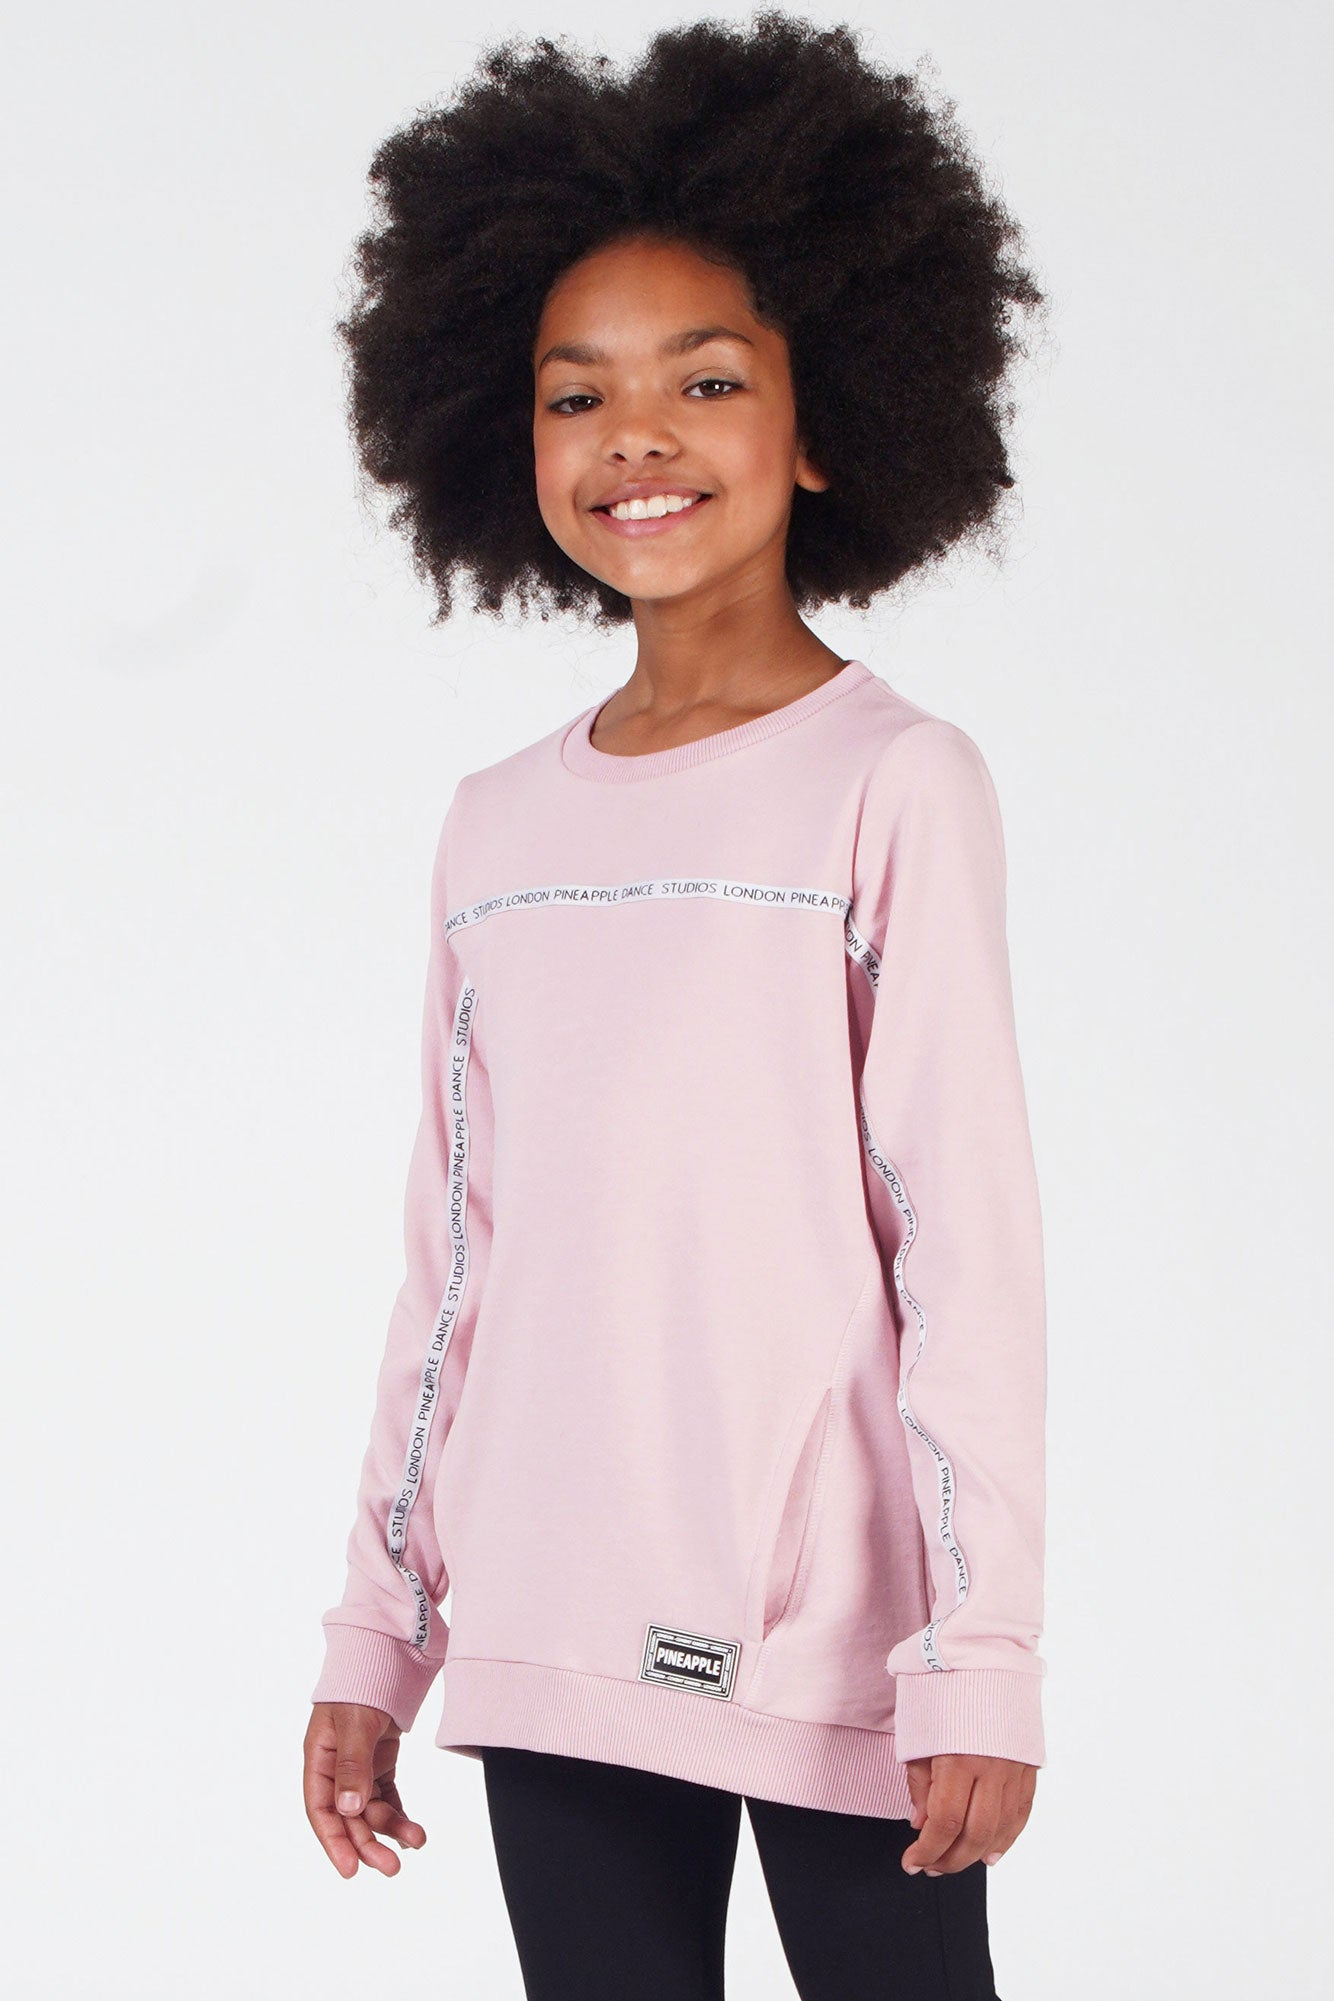 Girl wearing Pink Tape Monster Sweater